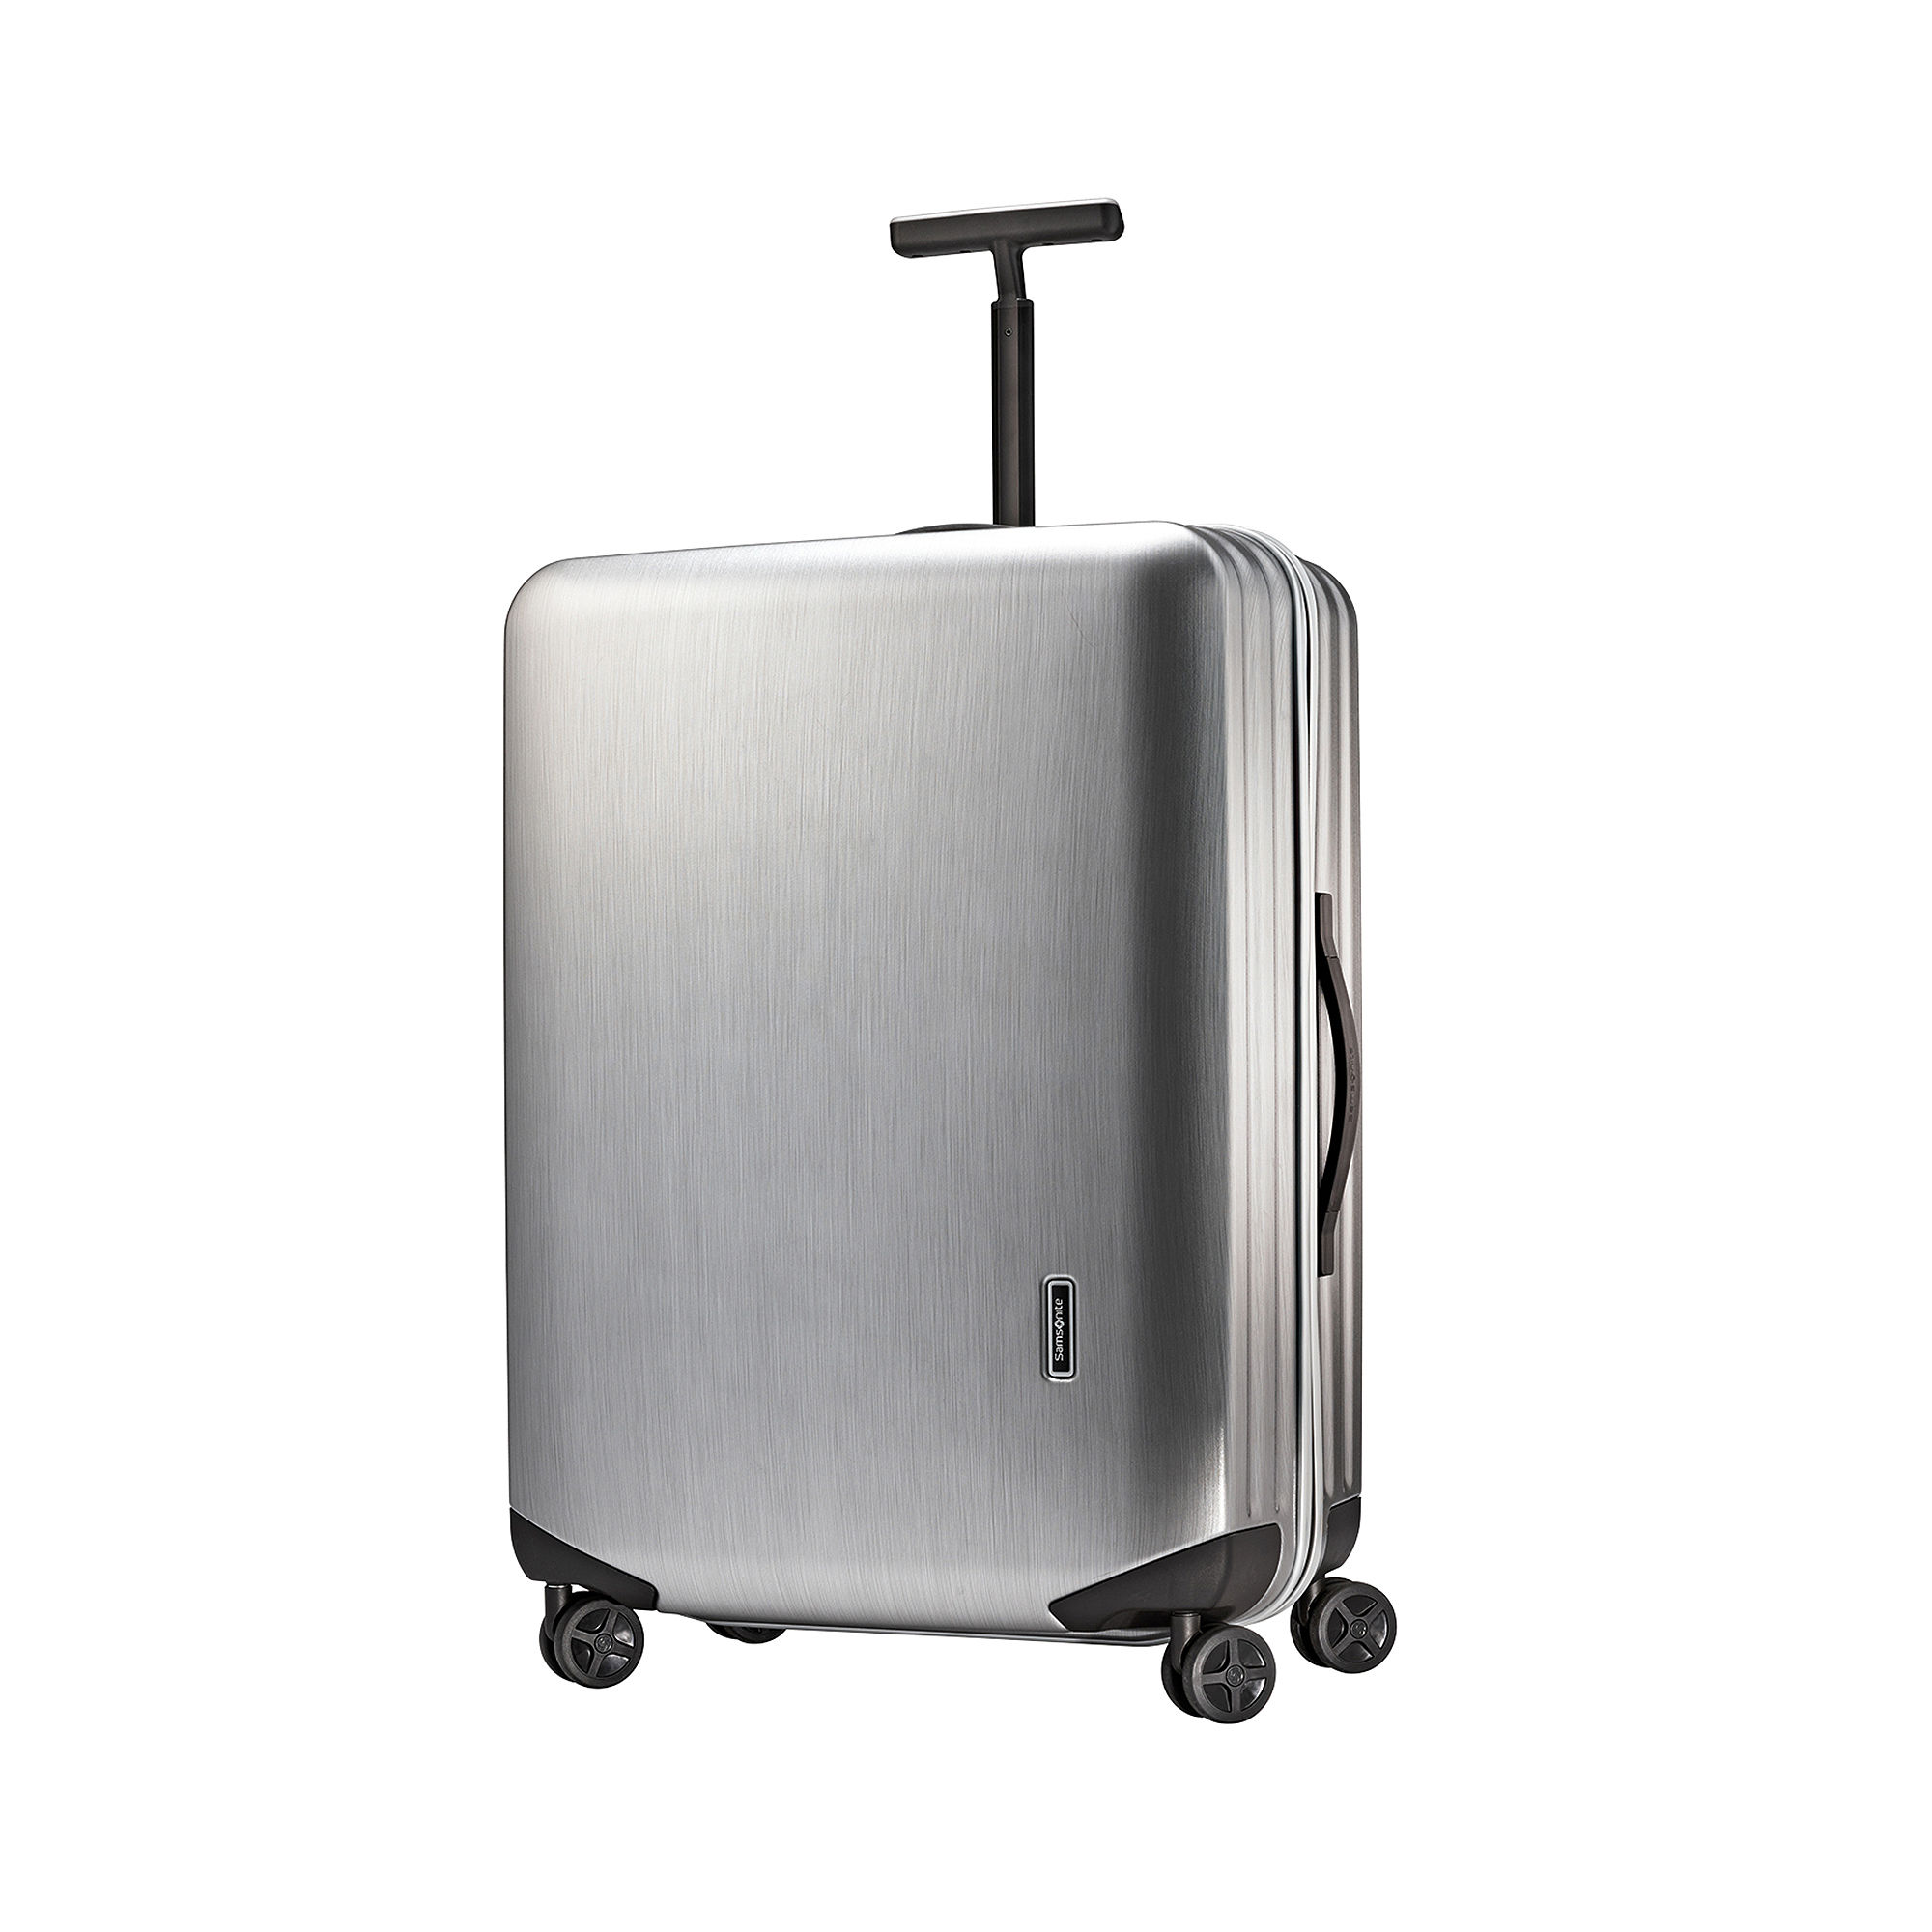 "Samsonite Inova 28"" Hardside Upright Luggage"